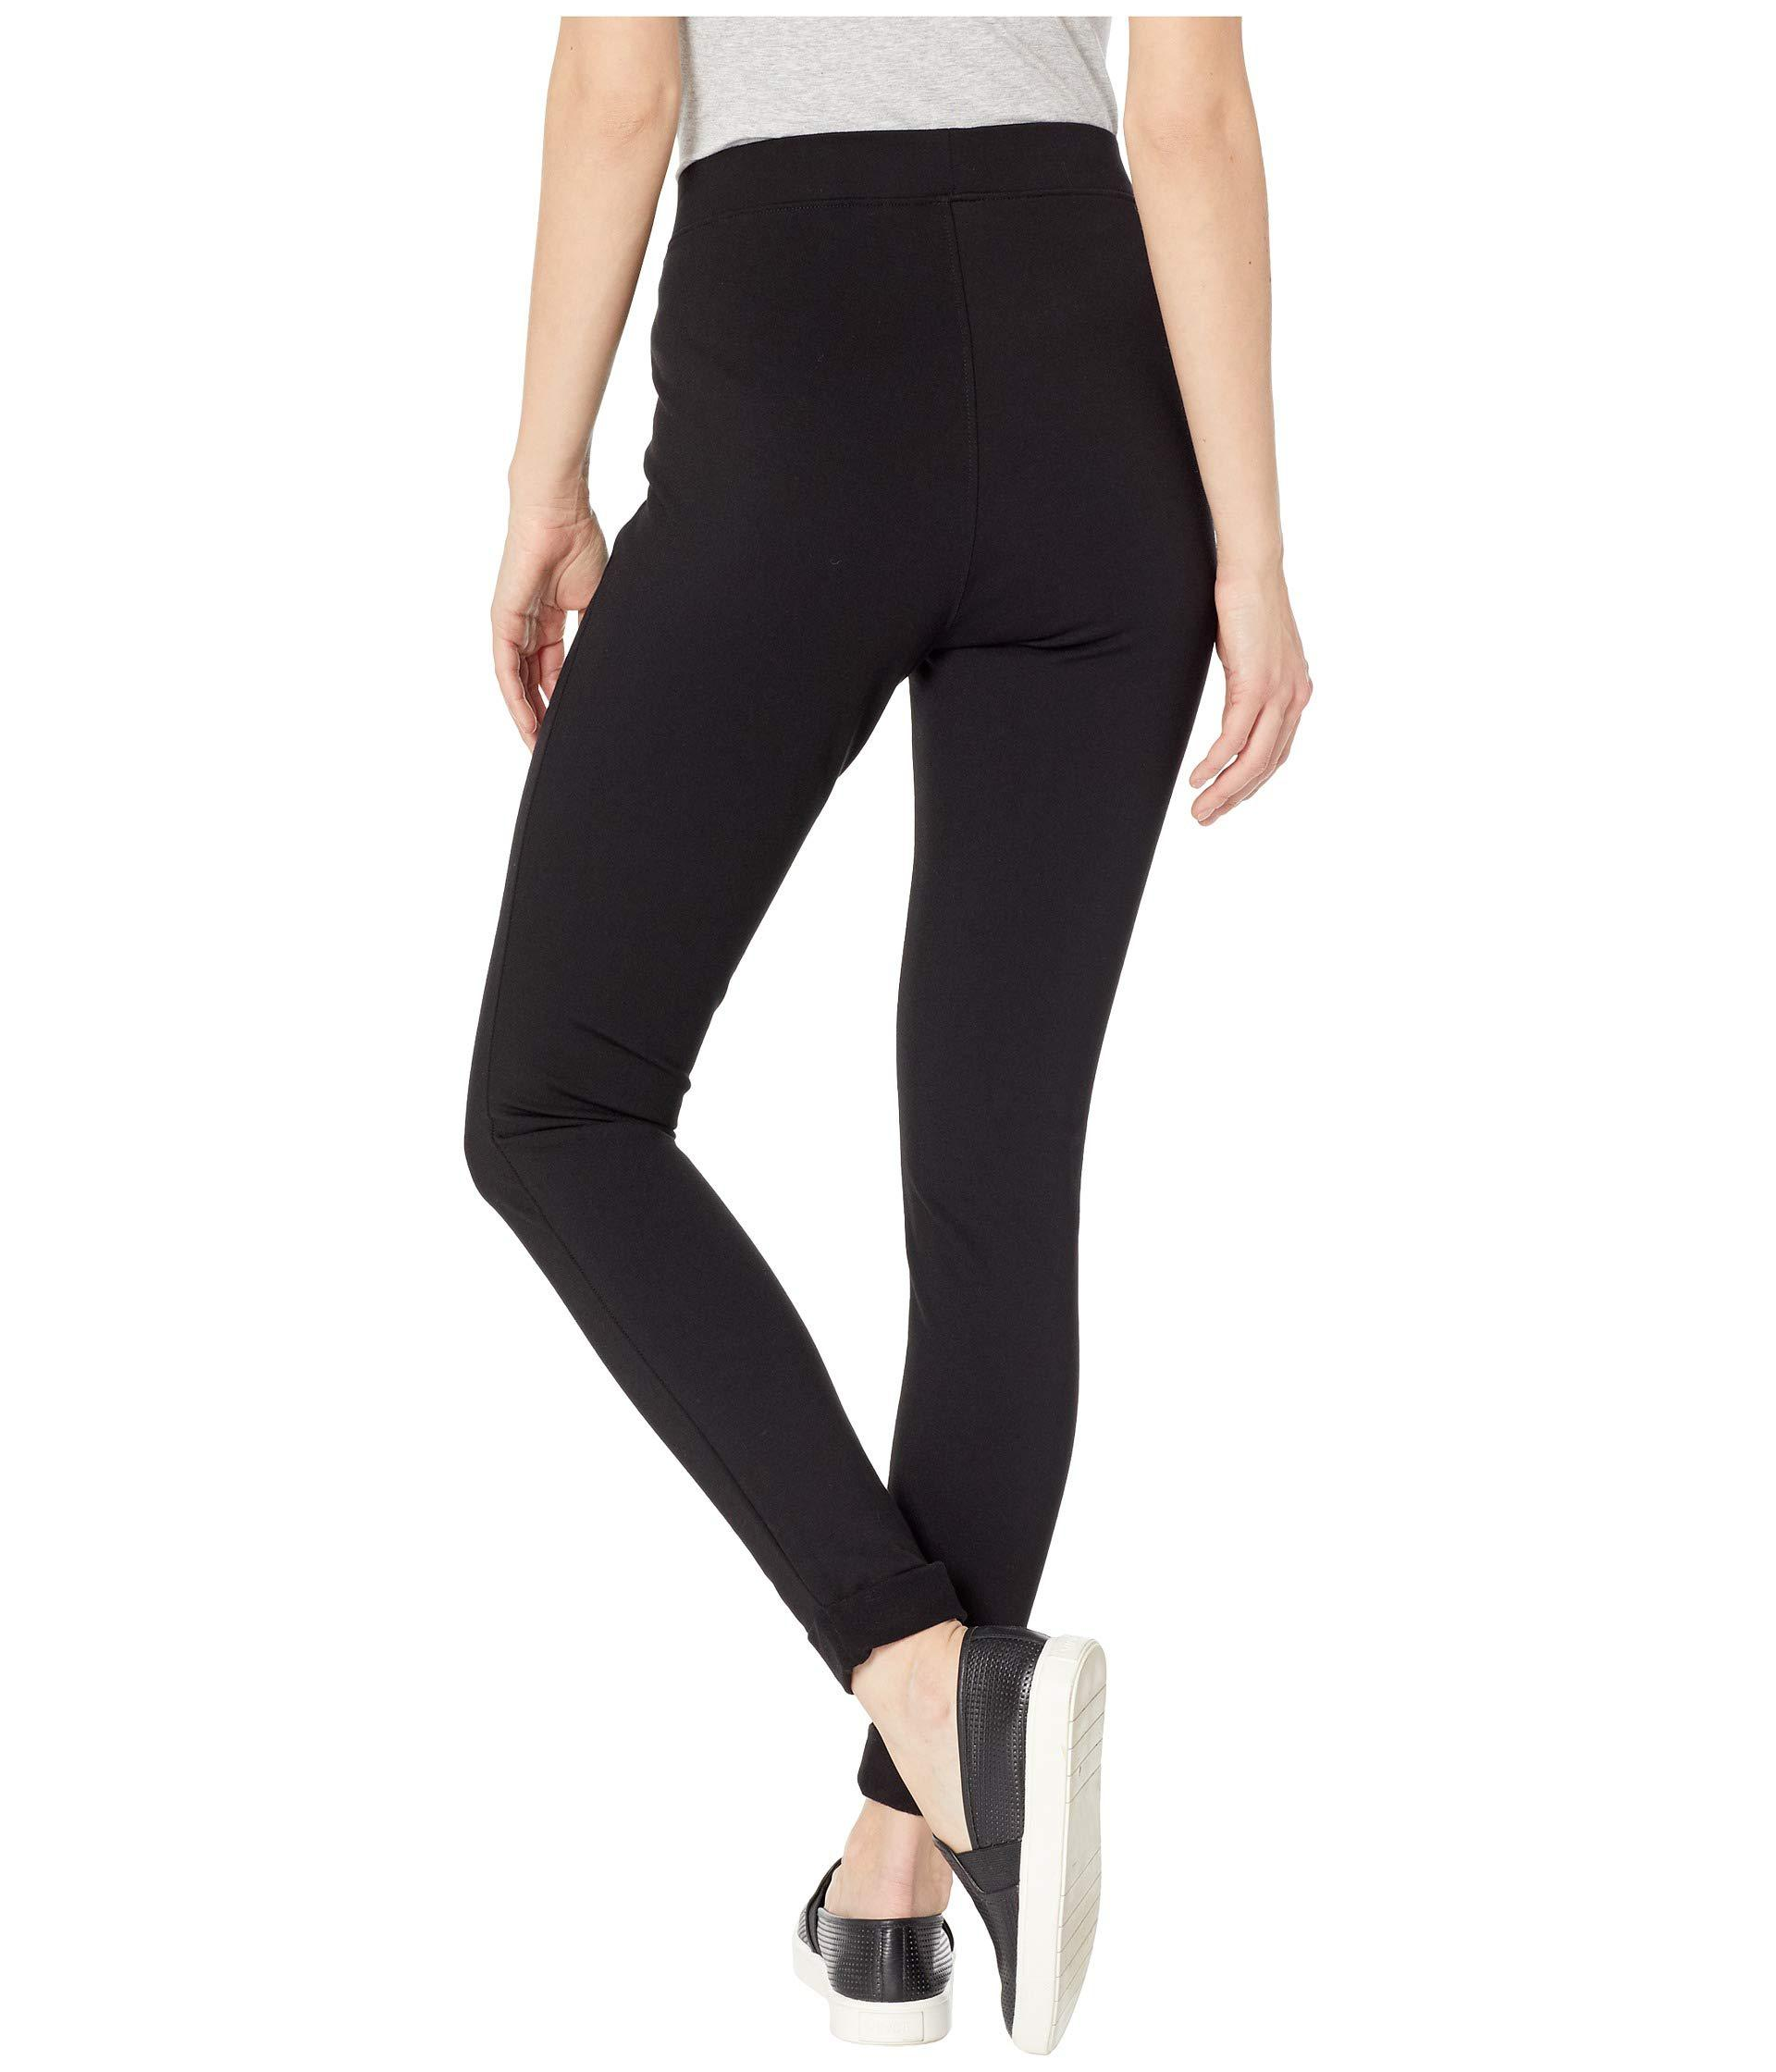 83d438b8323e1 Hue - Fleece Lined High-waist Ponte Leggings (black) Women's Casual Pants  -. View fullscreen